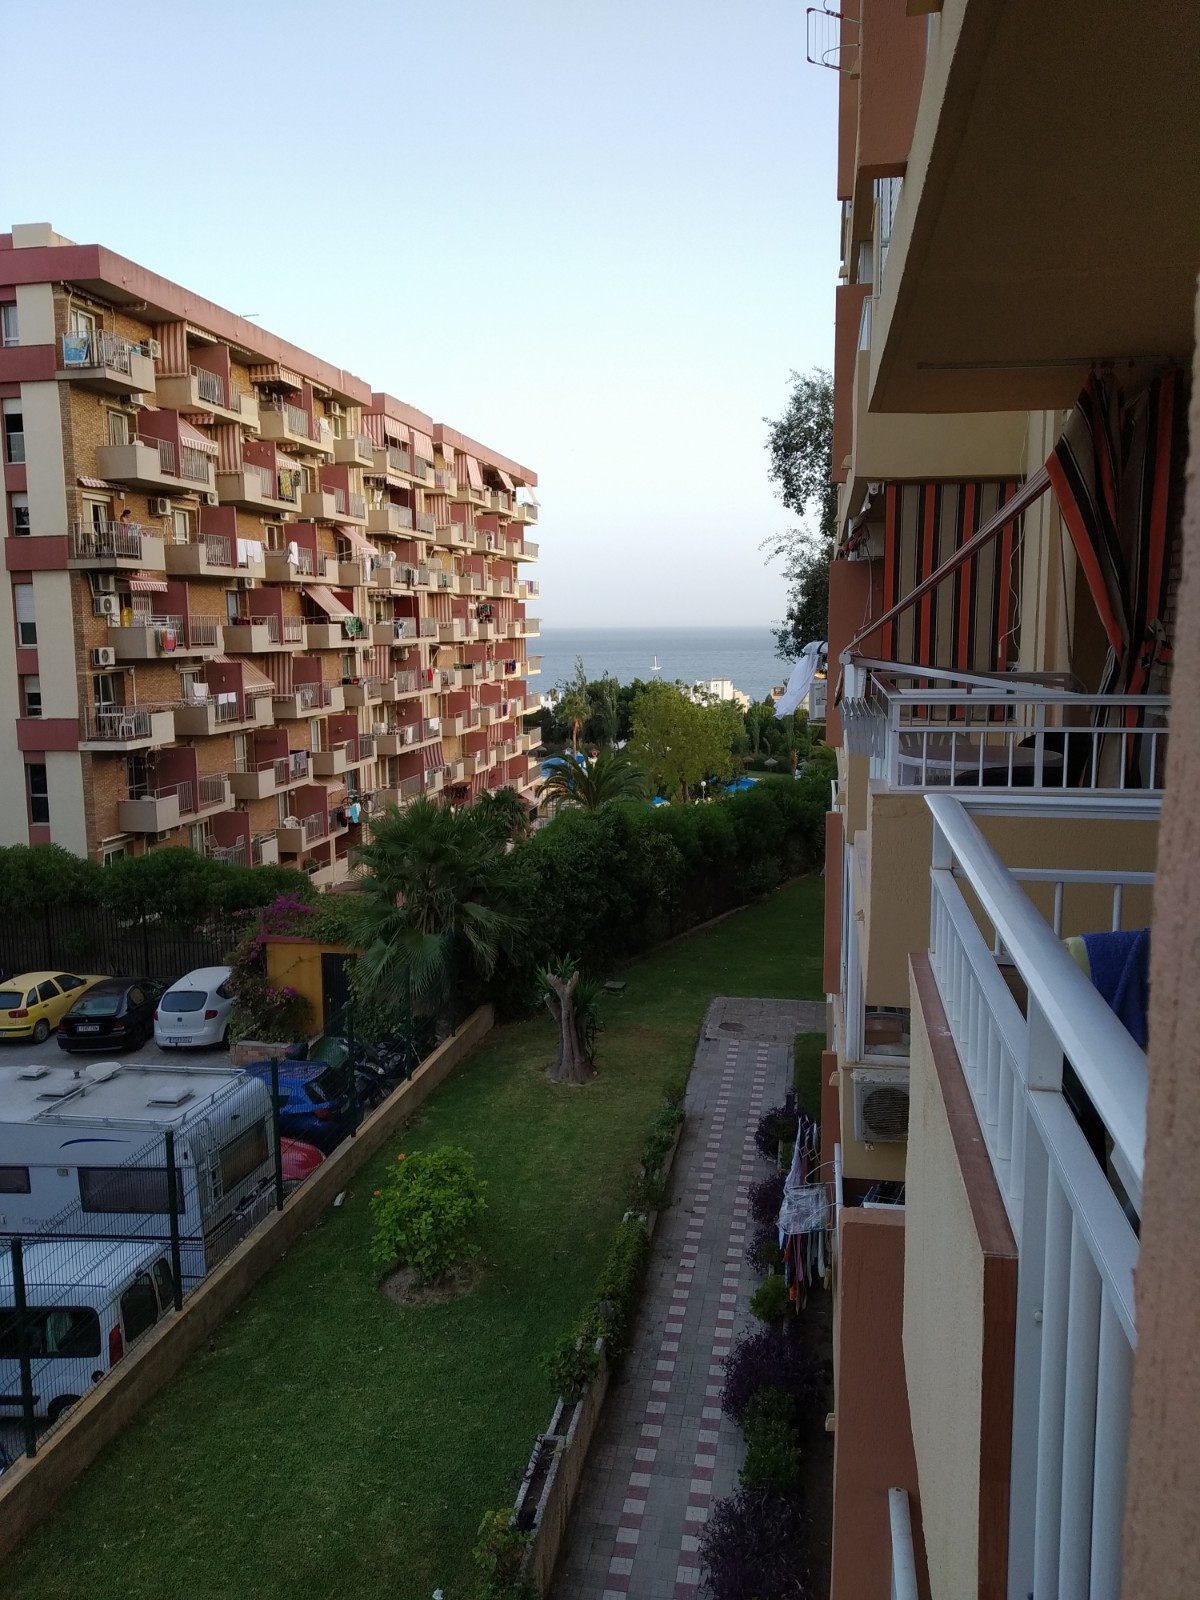 EXCELLENT LOFT IN BENALMADENA COSTA VERY WELL SITUATED. IT SALES WITH FURNISHE AND HAS FULLY EQUIPPE,Spain